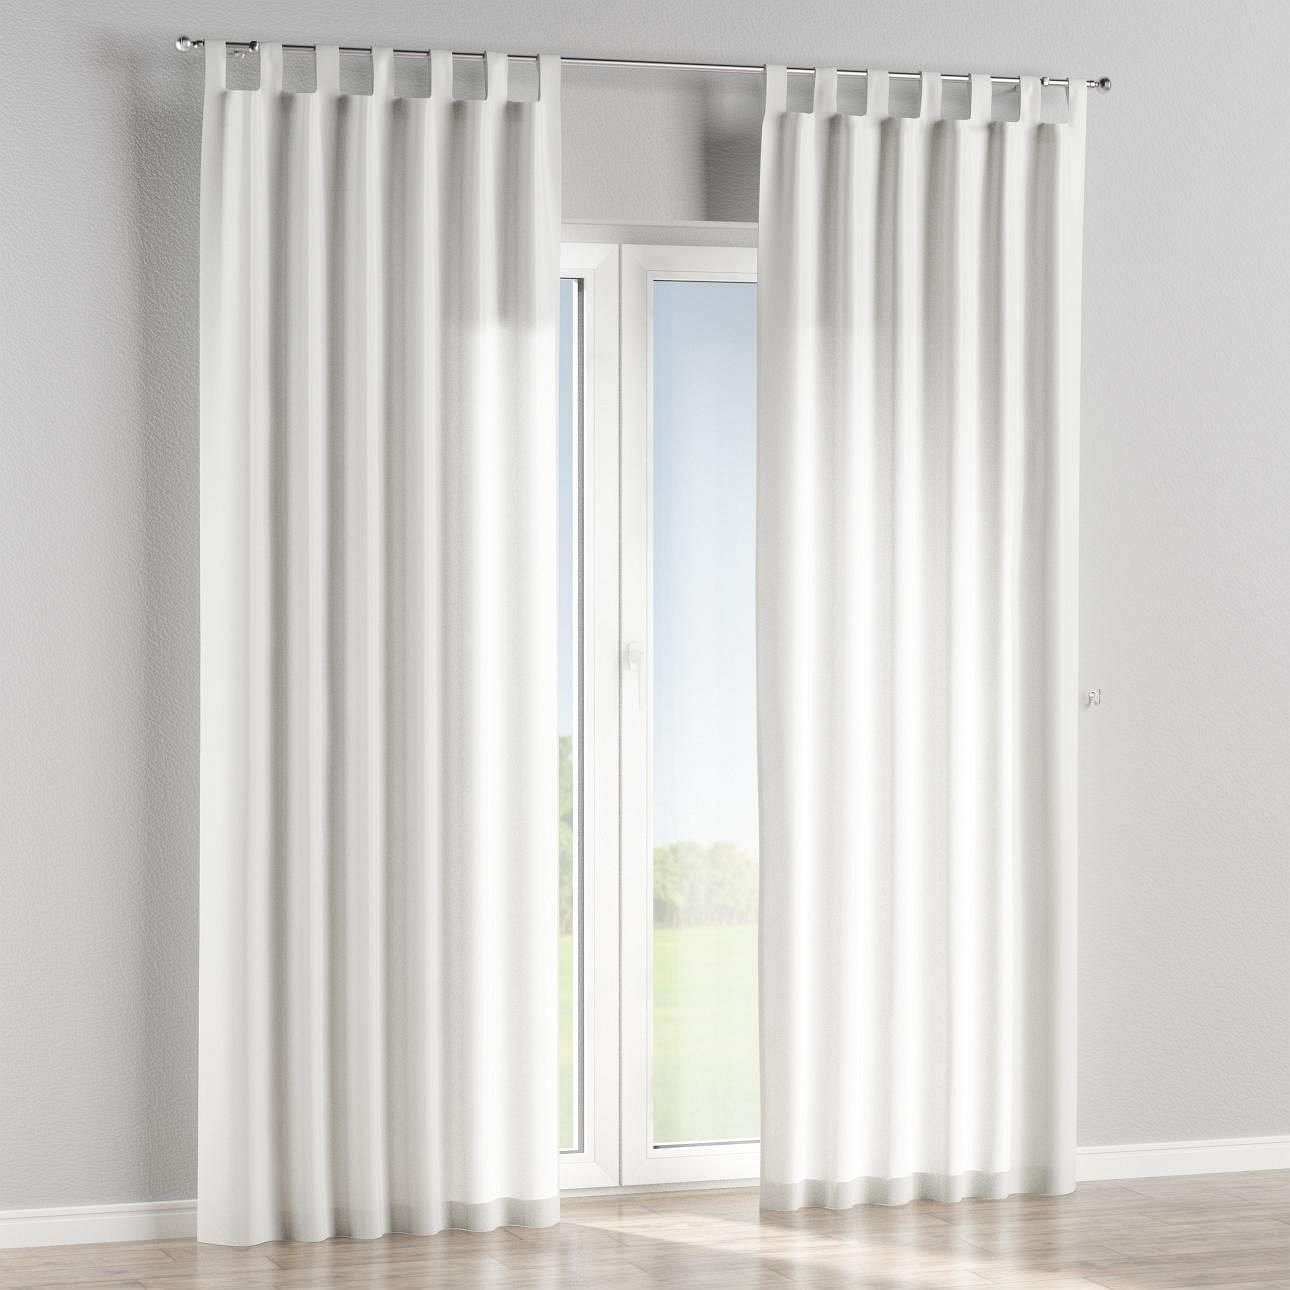 Tab top curtains in collection Linen , fabric: 392-08